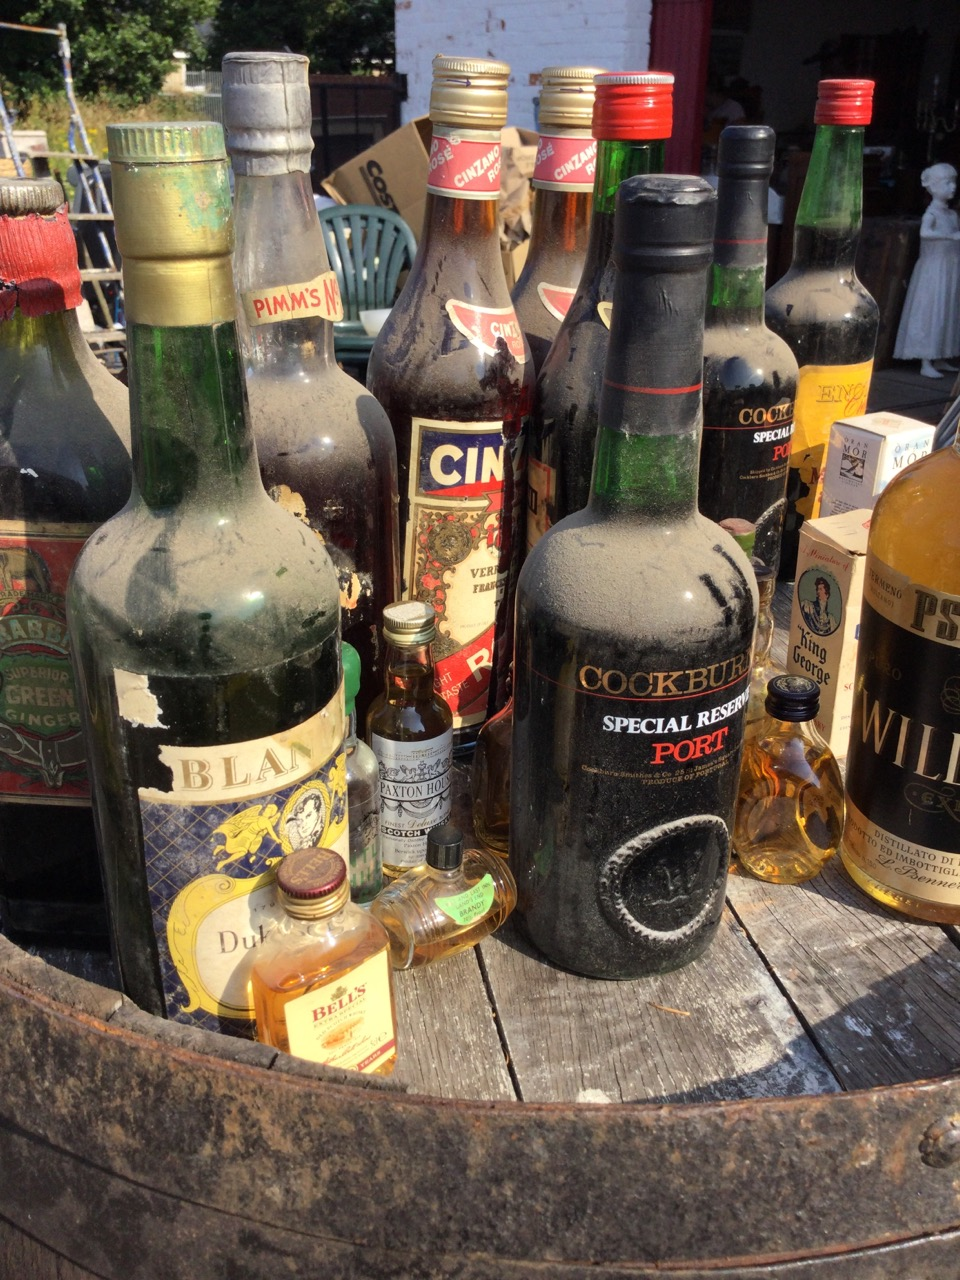 The residual contents of a booze cupboard including two bottles of Cockburns port, Martini, a bottle - Image 3 of 3